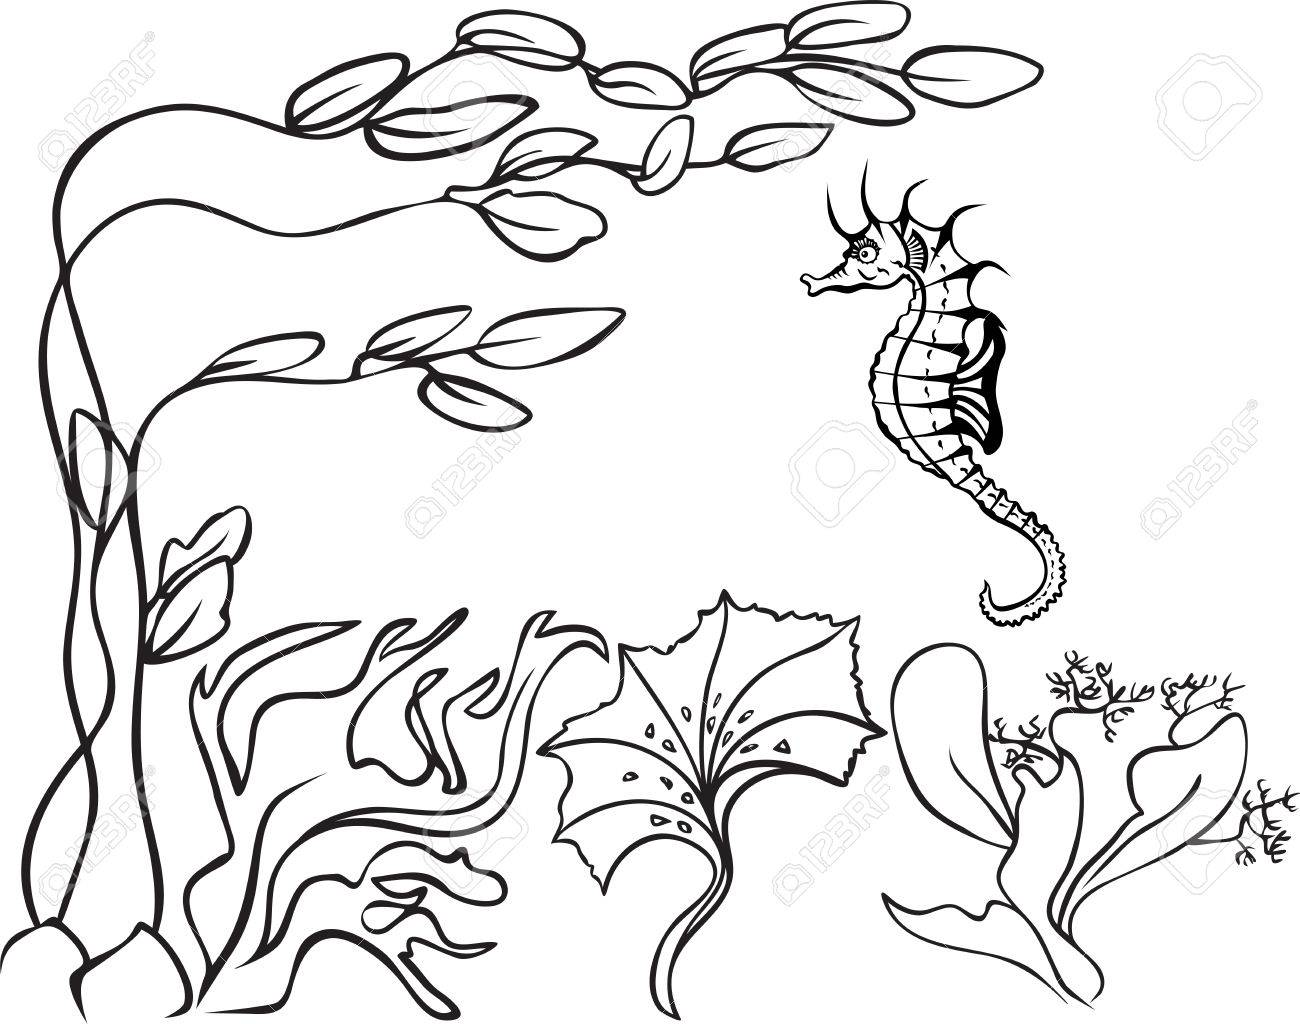 1300x1024 Sketch, Underwater, Seaweed And Sea Horse Royalty Free Cliparts